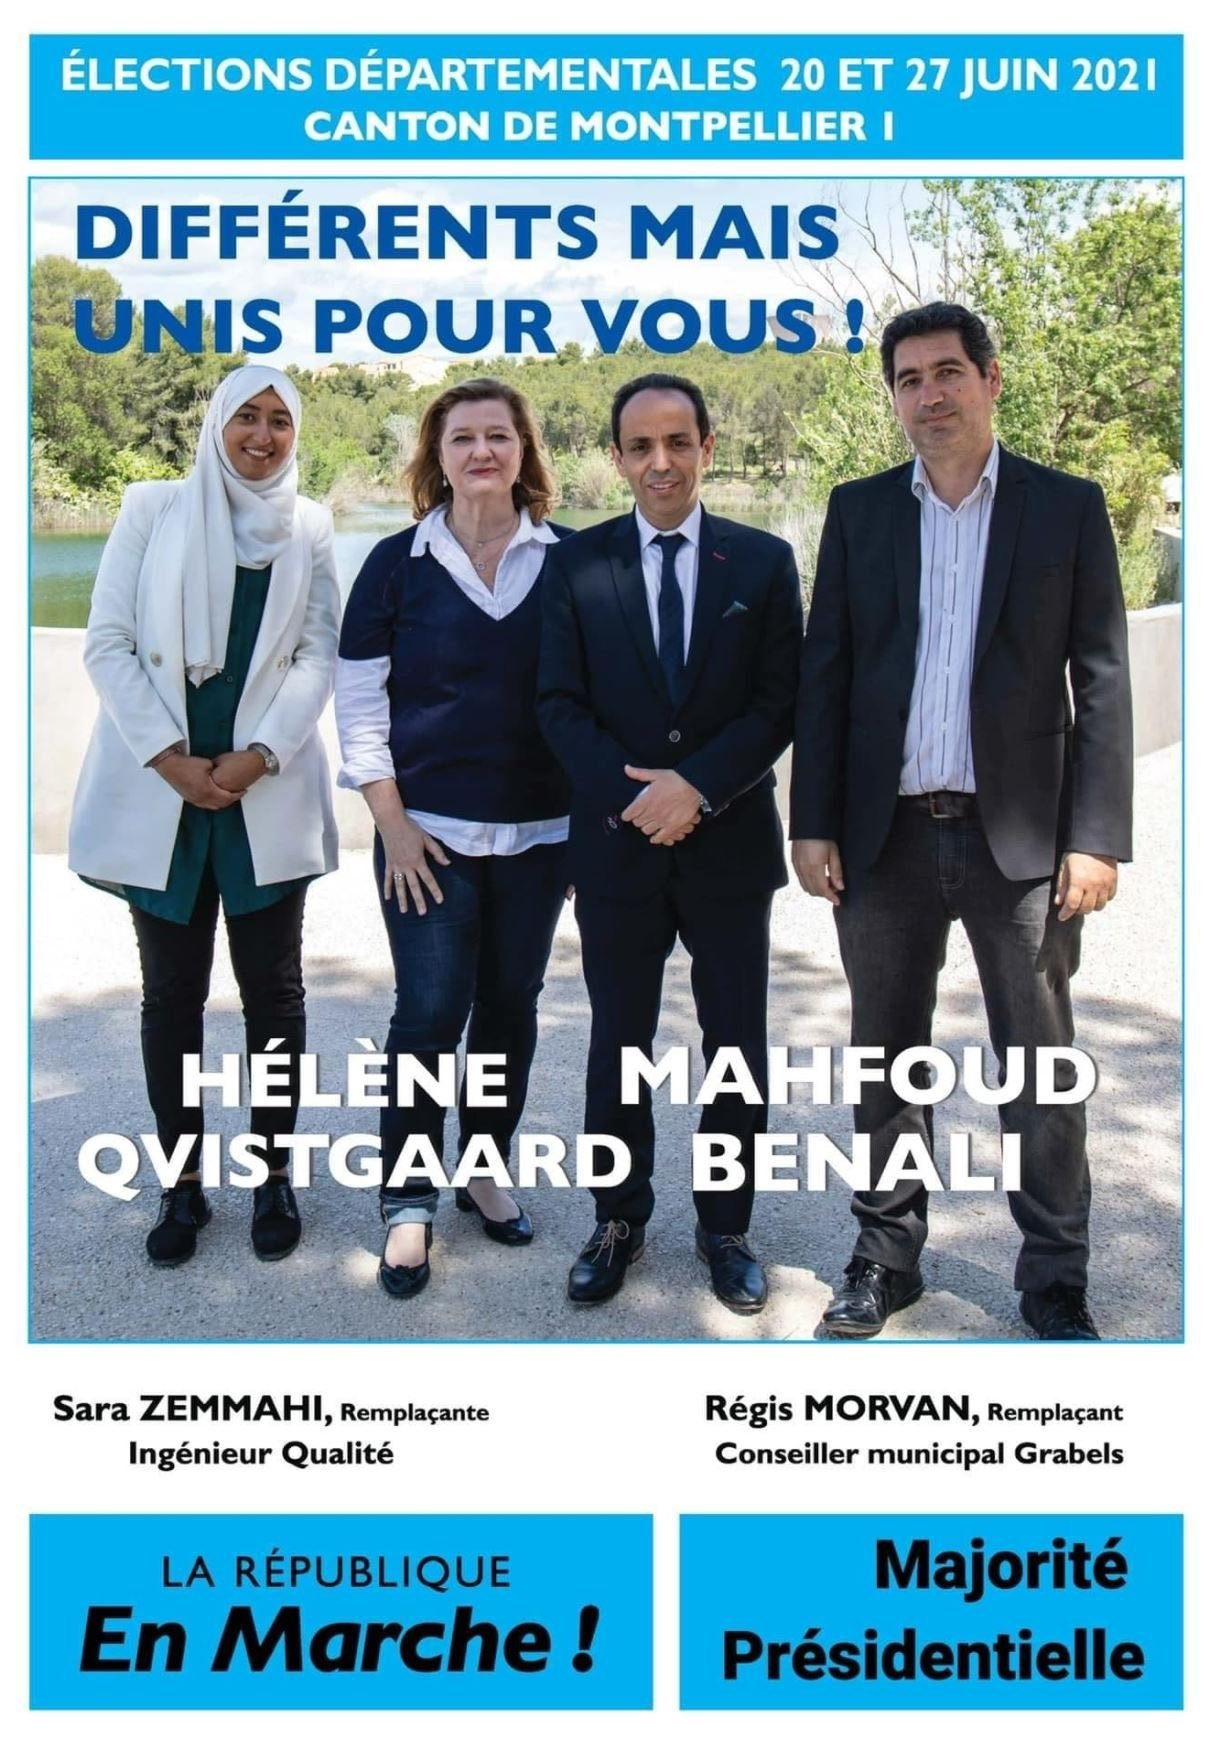 """Sara Zemmahi (L) wearing a headscarf on a local election poster that reads """"Different But United For You."""""""